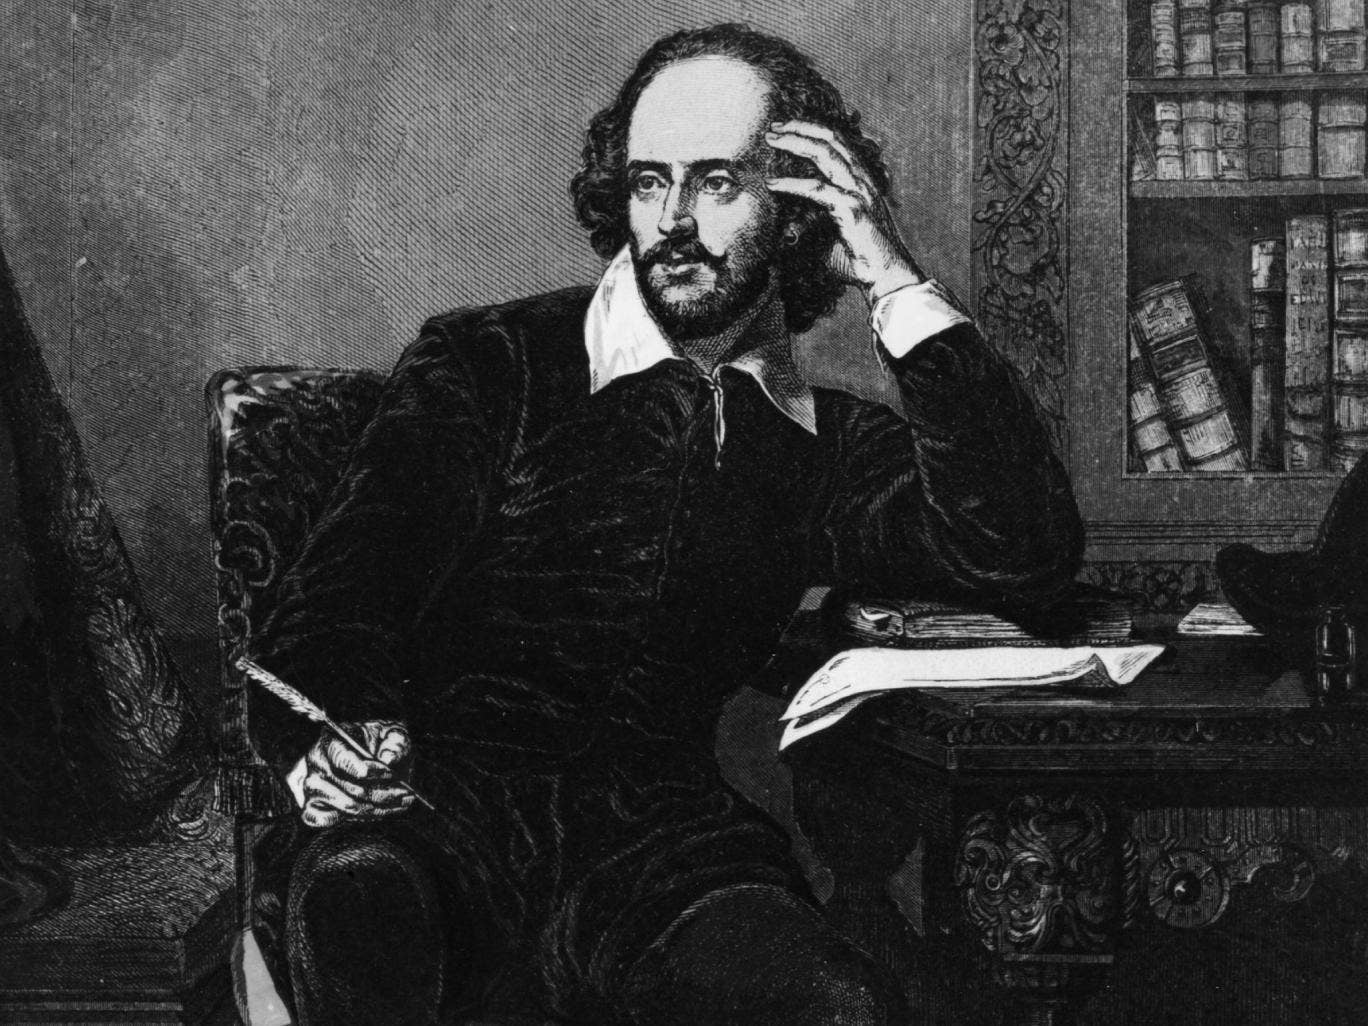 William Shakespeare as a dramatist